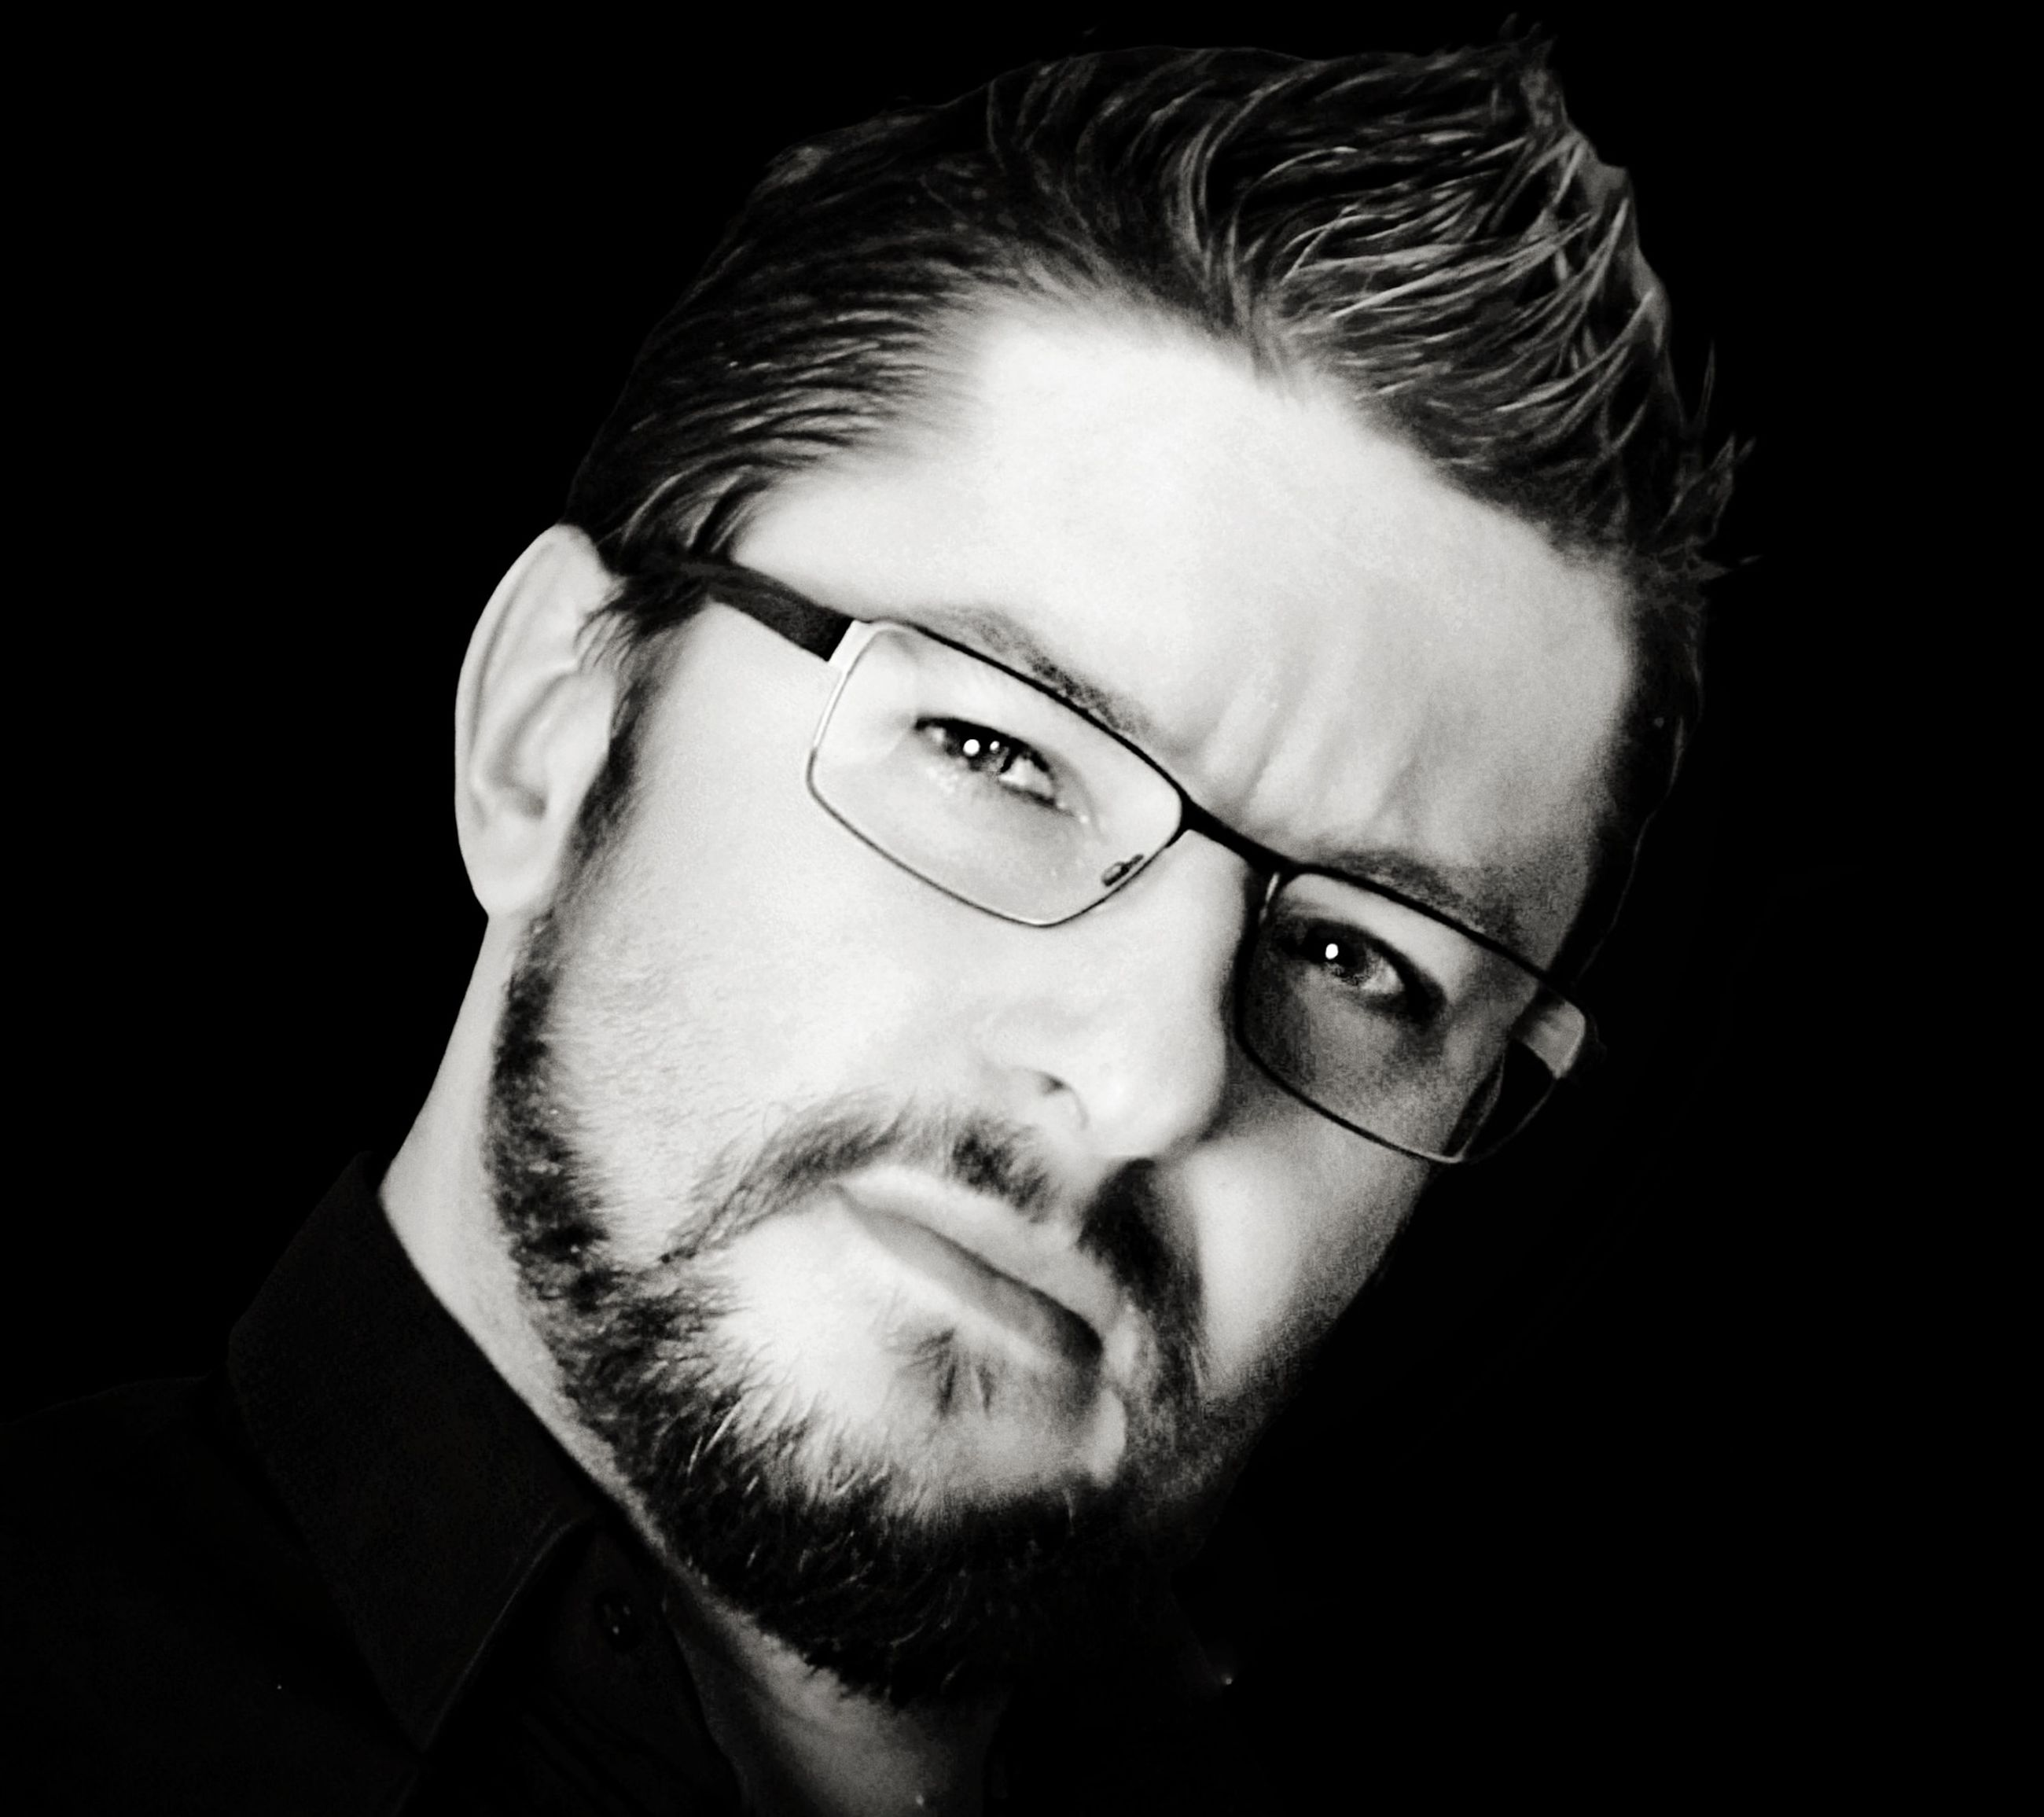 portrait, one person, black and white, beard, headshot, eyeglasses, facial hair, black background, glasses, adult, monochrome photography, men, studio shot, monochrome, indoors, black, human hair, looking at camera, close-up, human face, moustache, vision care, eyewear, serious, young adult, front view, portrait photography, hairstyle, contemplation, looking, lifestyles, white, stubble, person, copy space